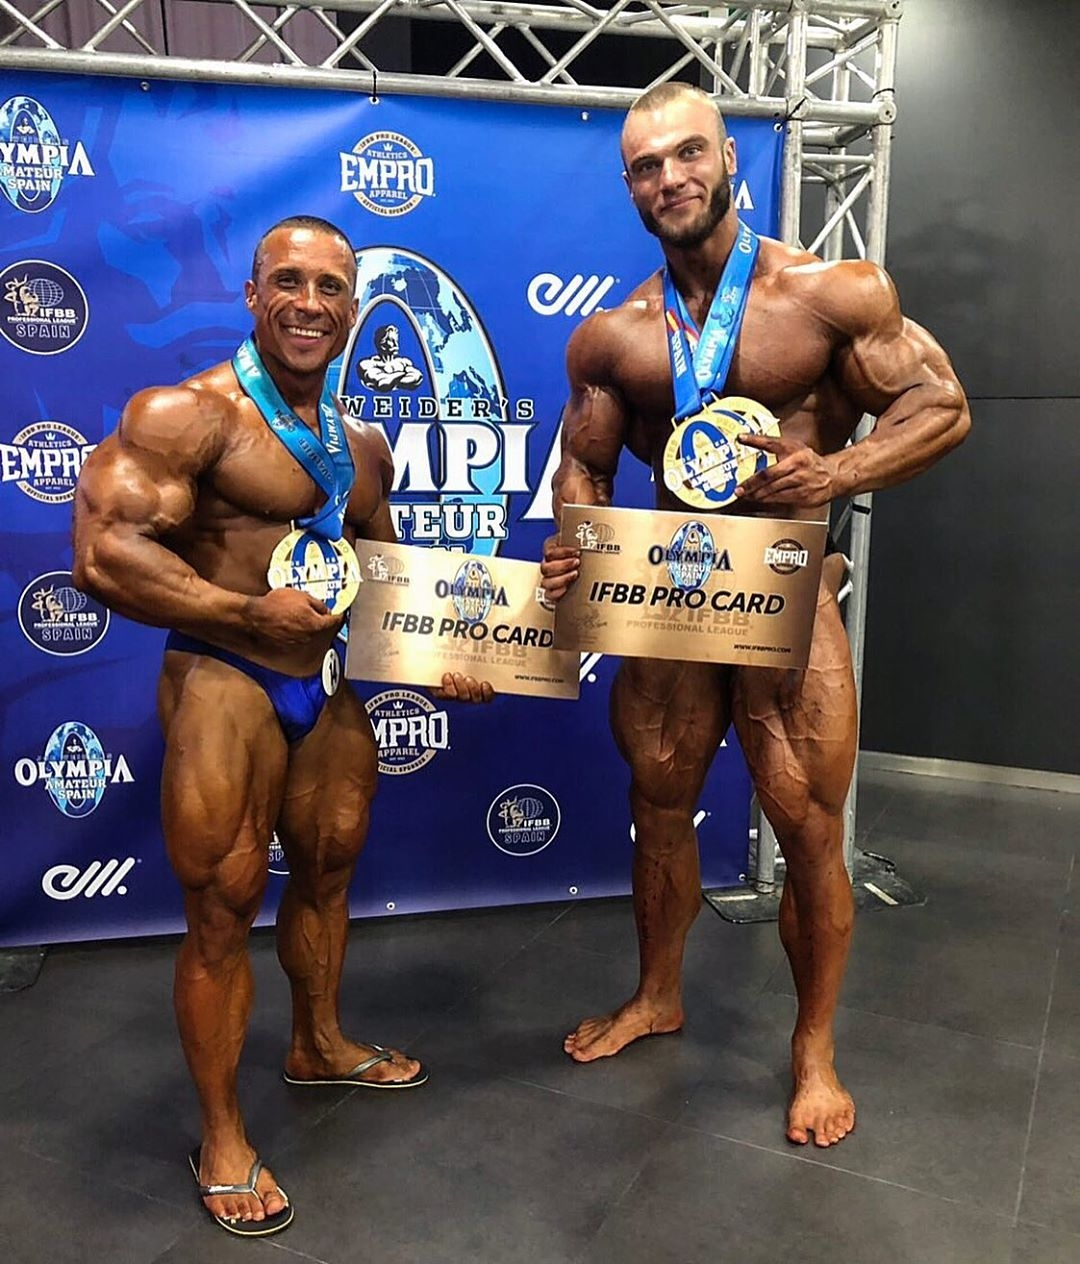 2019 Olympia Amateur Spain - Bodybuilding Overall